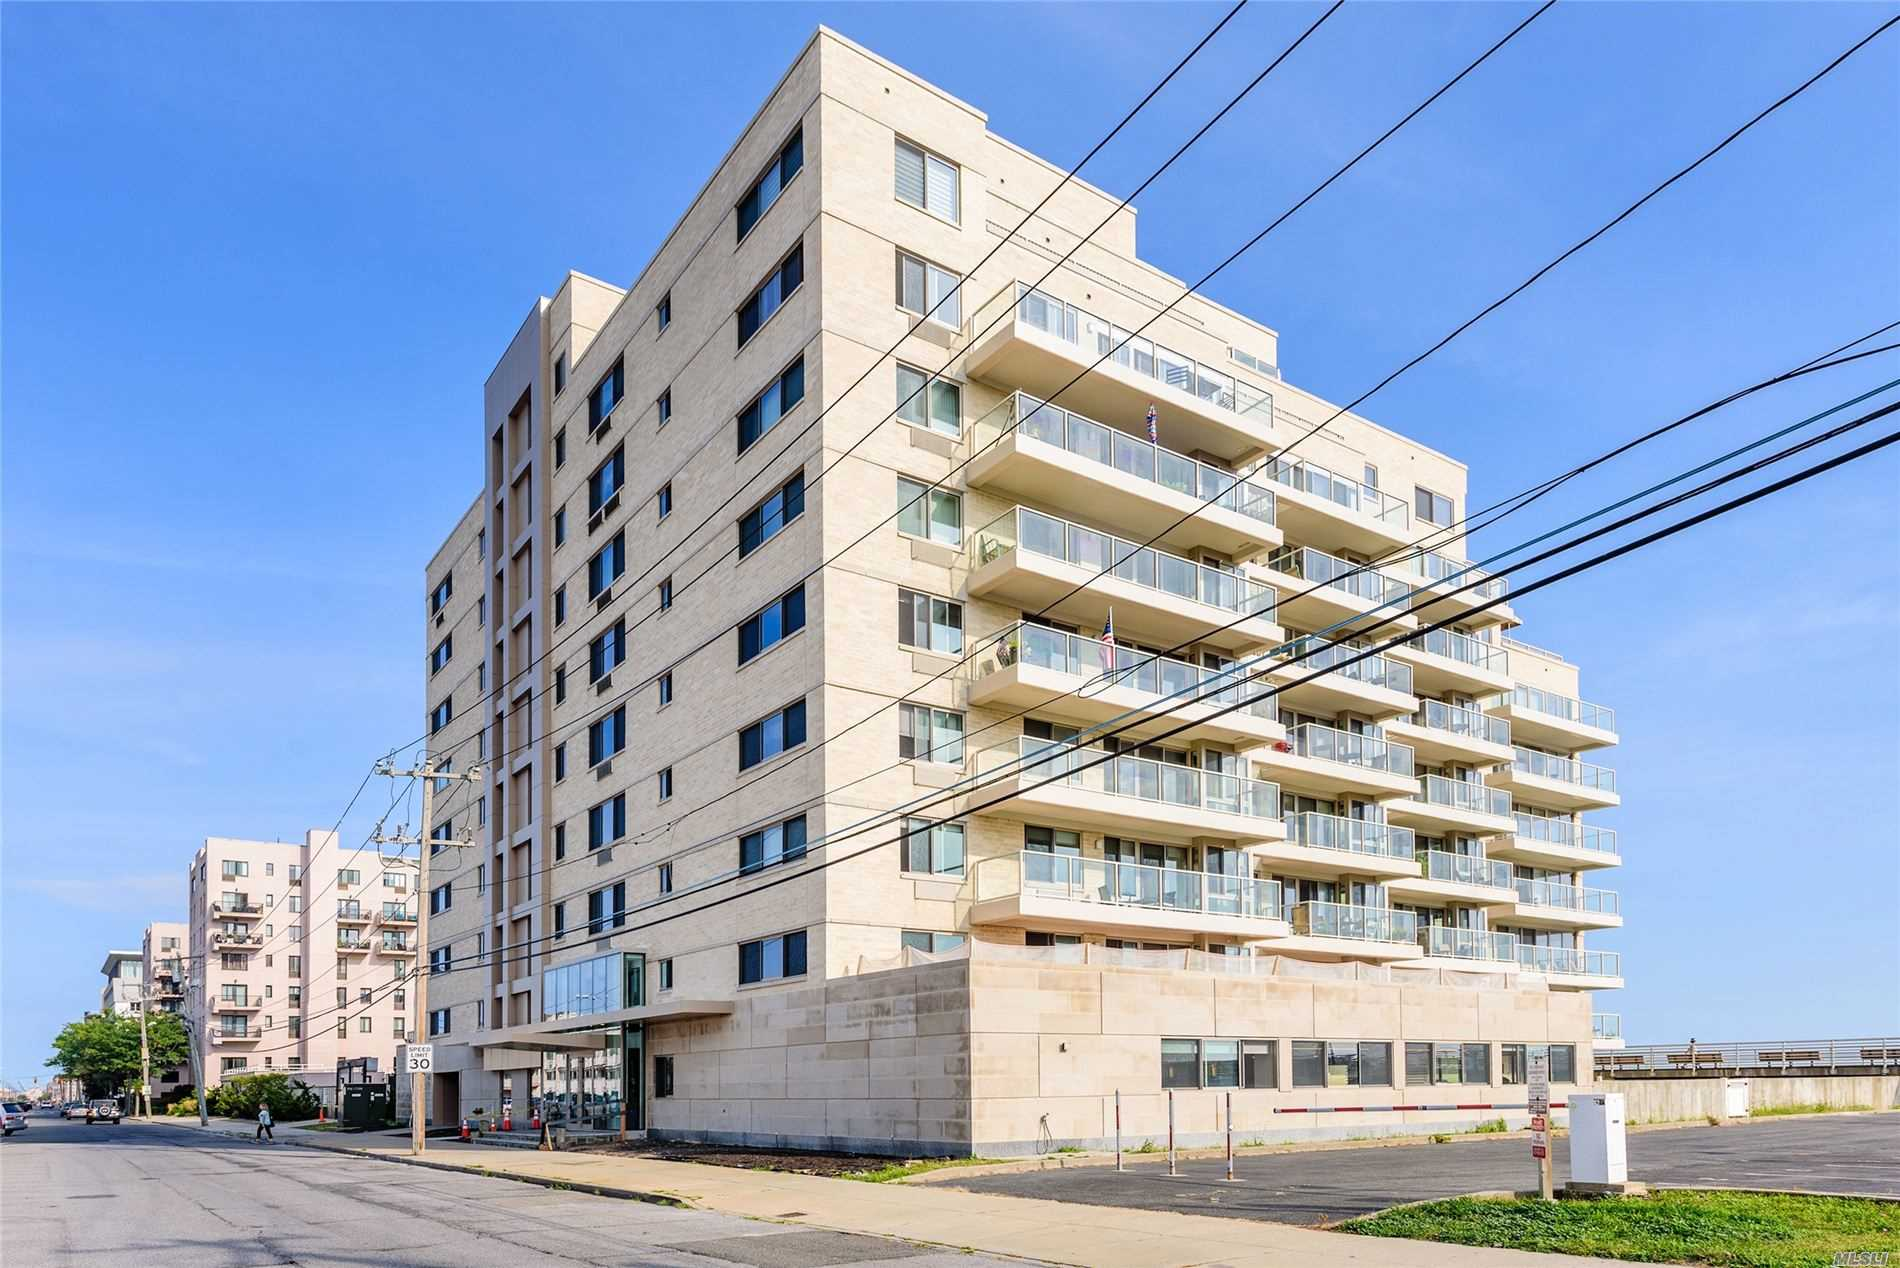 Property for sale at 170 W Broadway # 4B, Long Beach NY 11561, Long Beach,  New York 11561